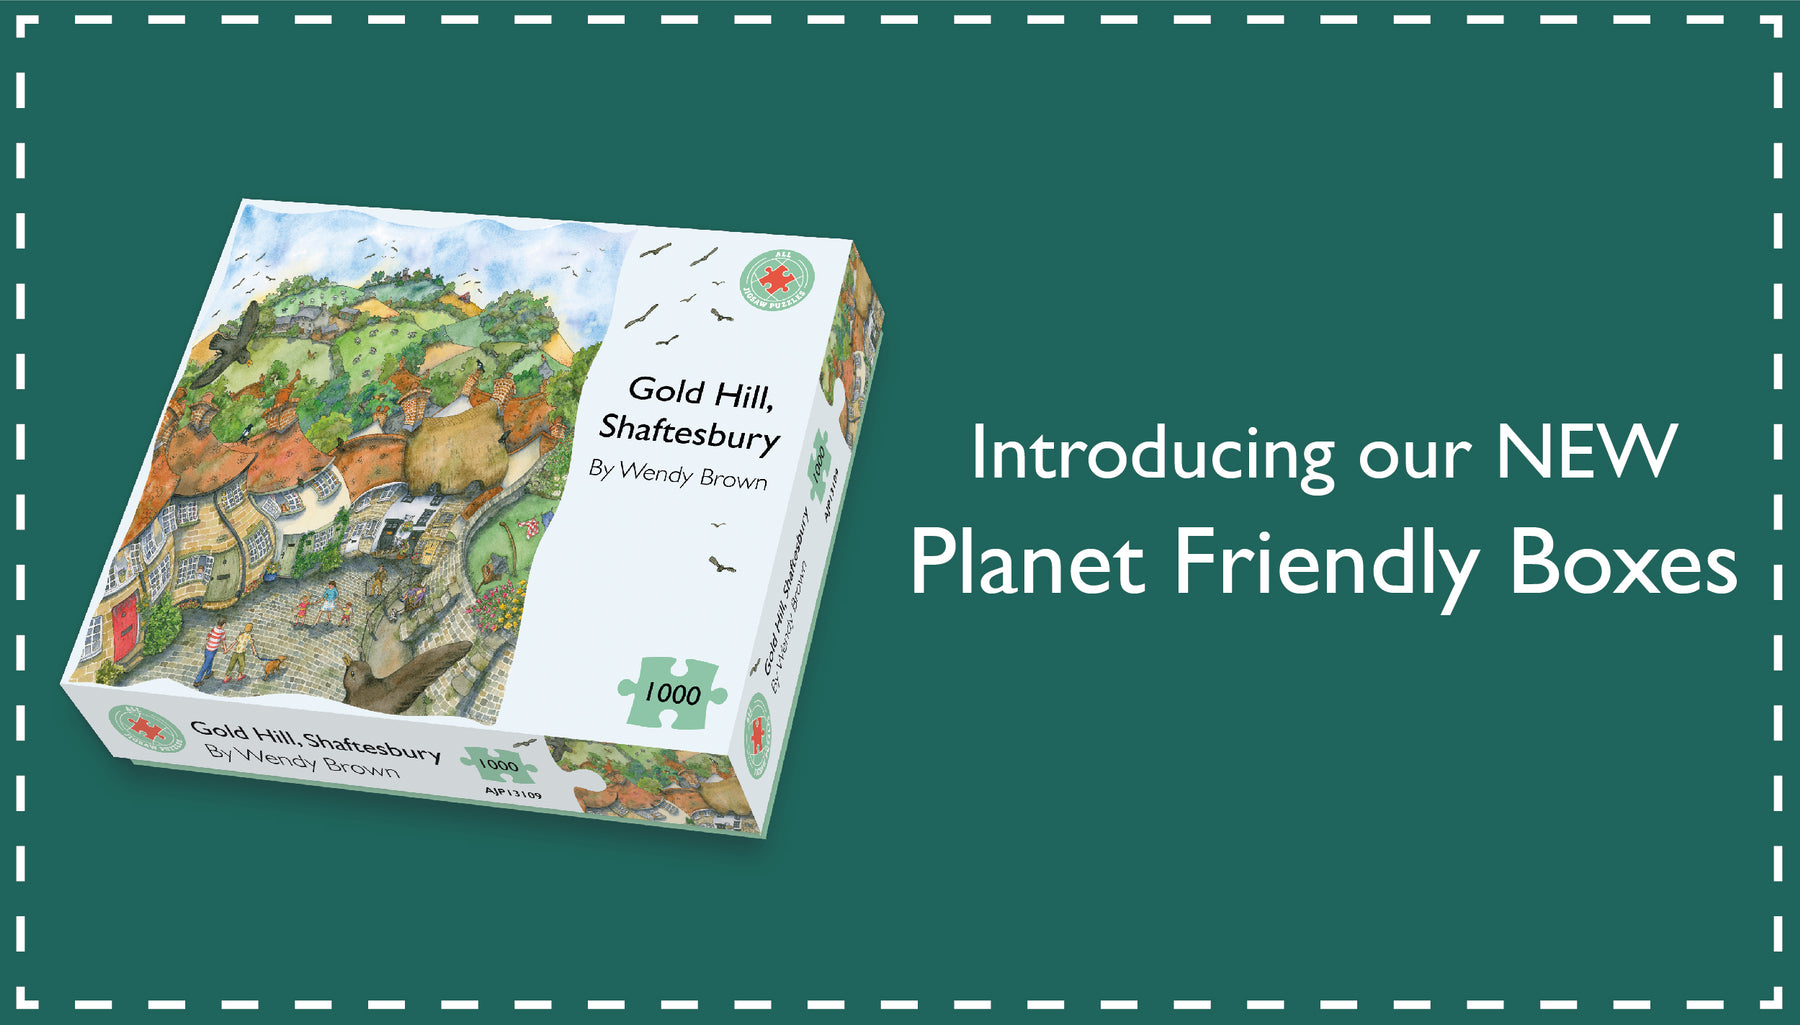 Introducing our new Planet Friendly Boxes!